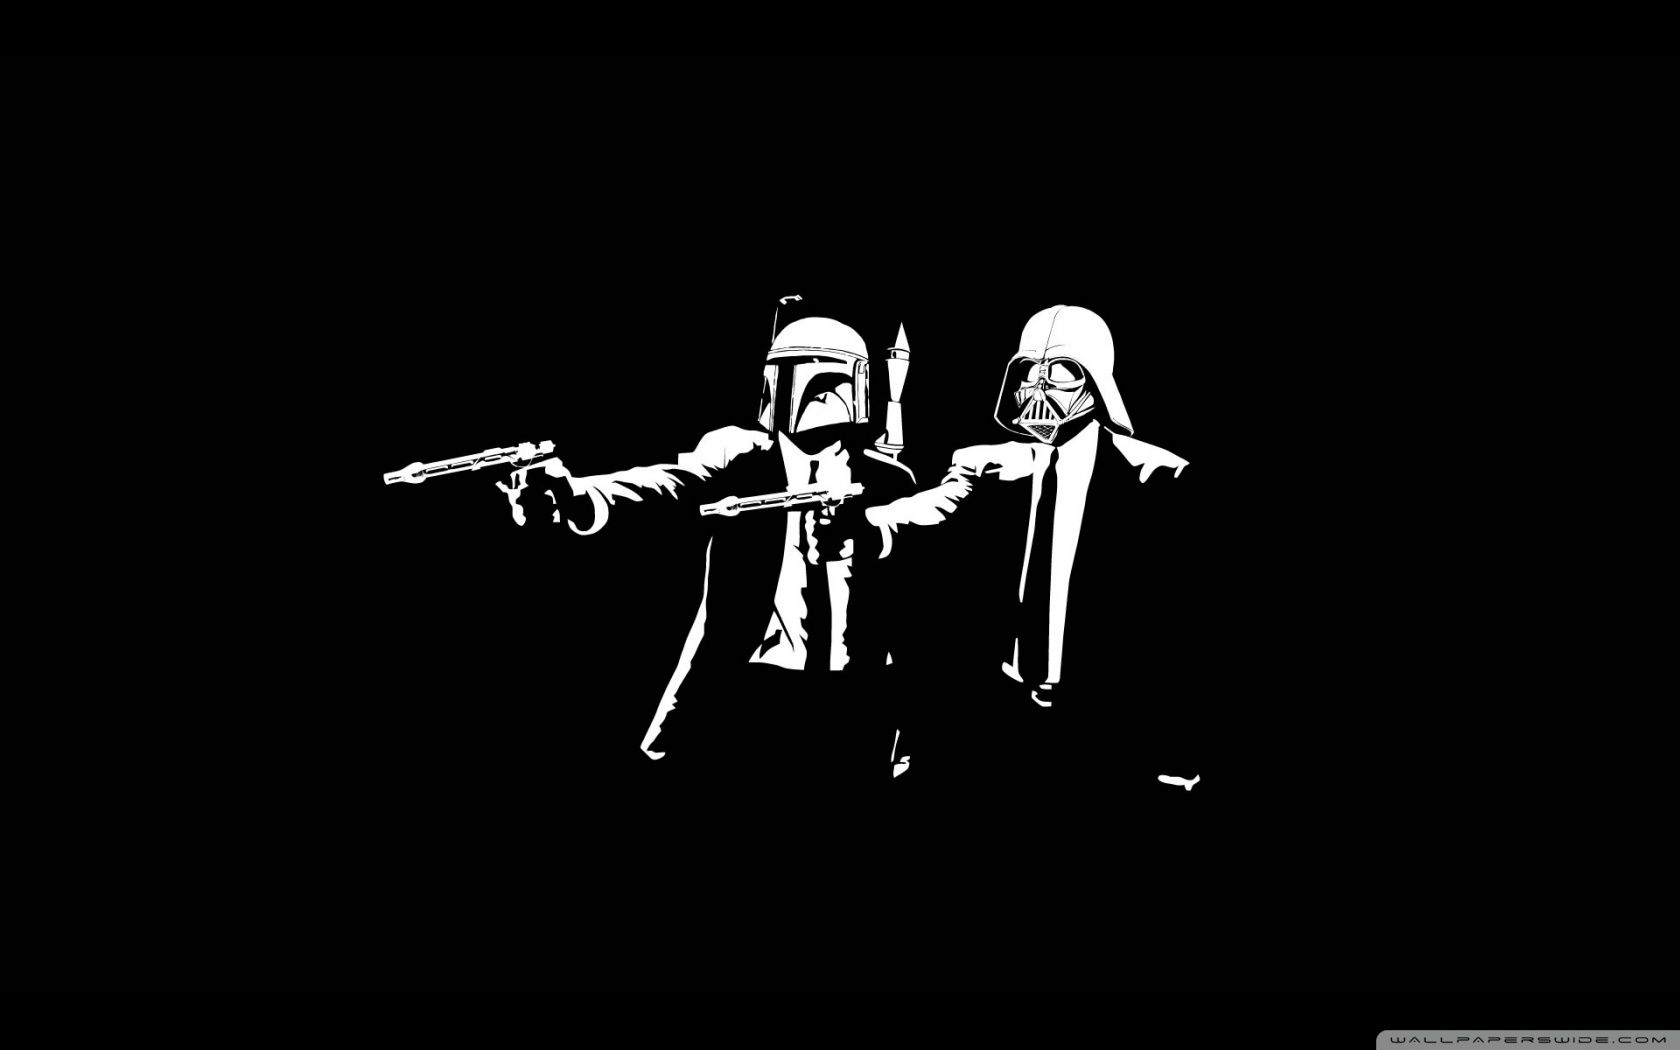 1680x1050 Wallpaper Hd 1080P Black And White Star Wars | Wallpapers Memes